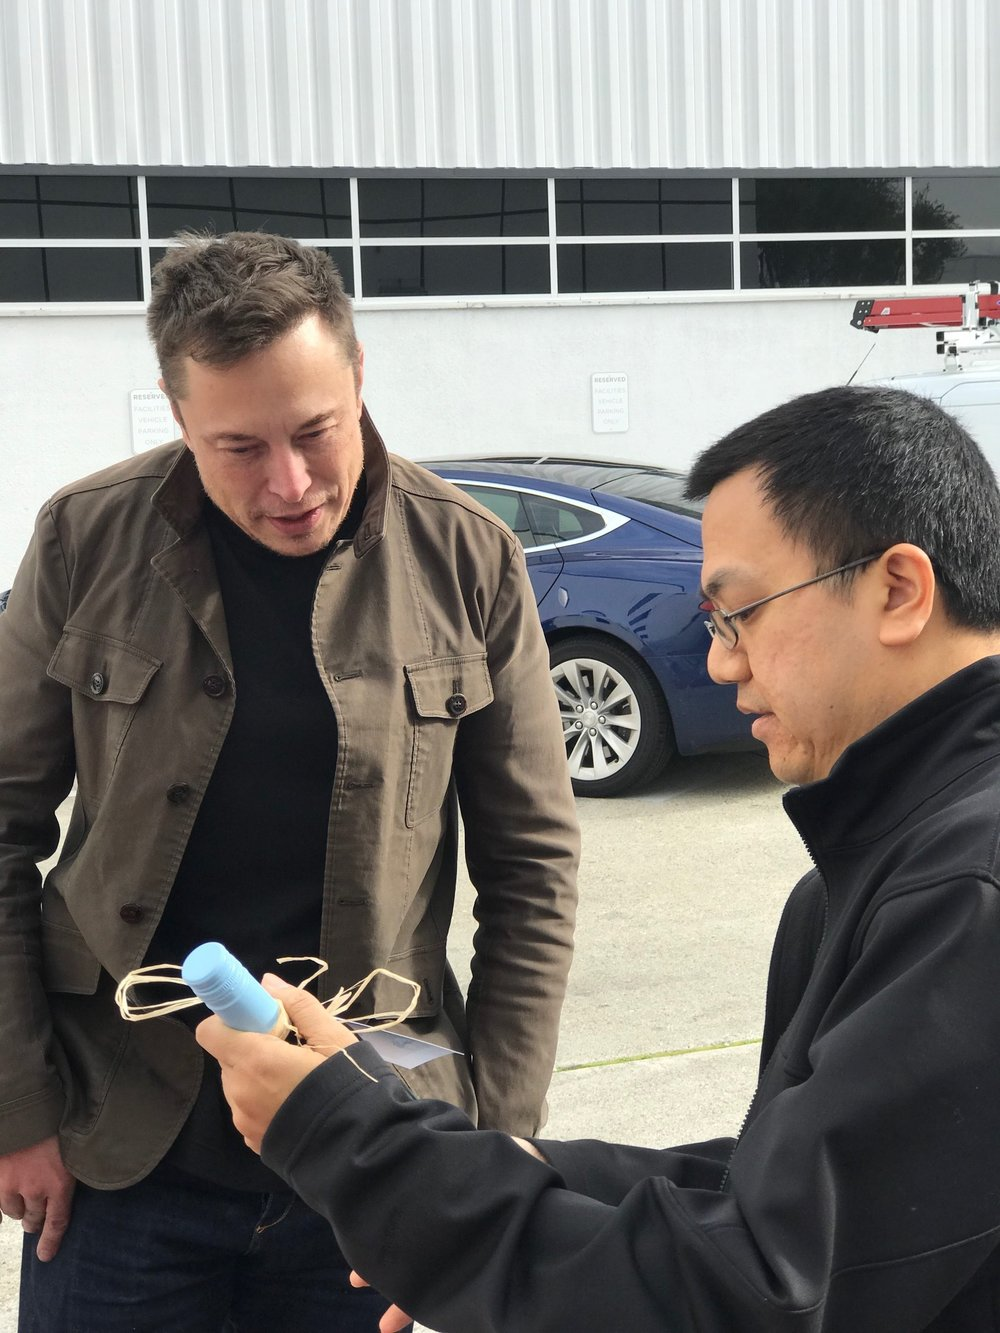 Matthew Chan talks with Elon Musk, co-founder, CEO and Product Architect at Tesla, about how he helped incorporate electric vehicle charging options into our parking lot, with the help of Tesla's destination charging program.